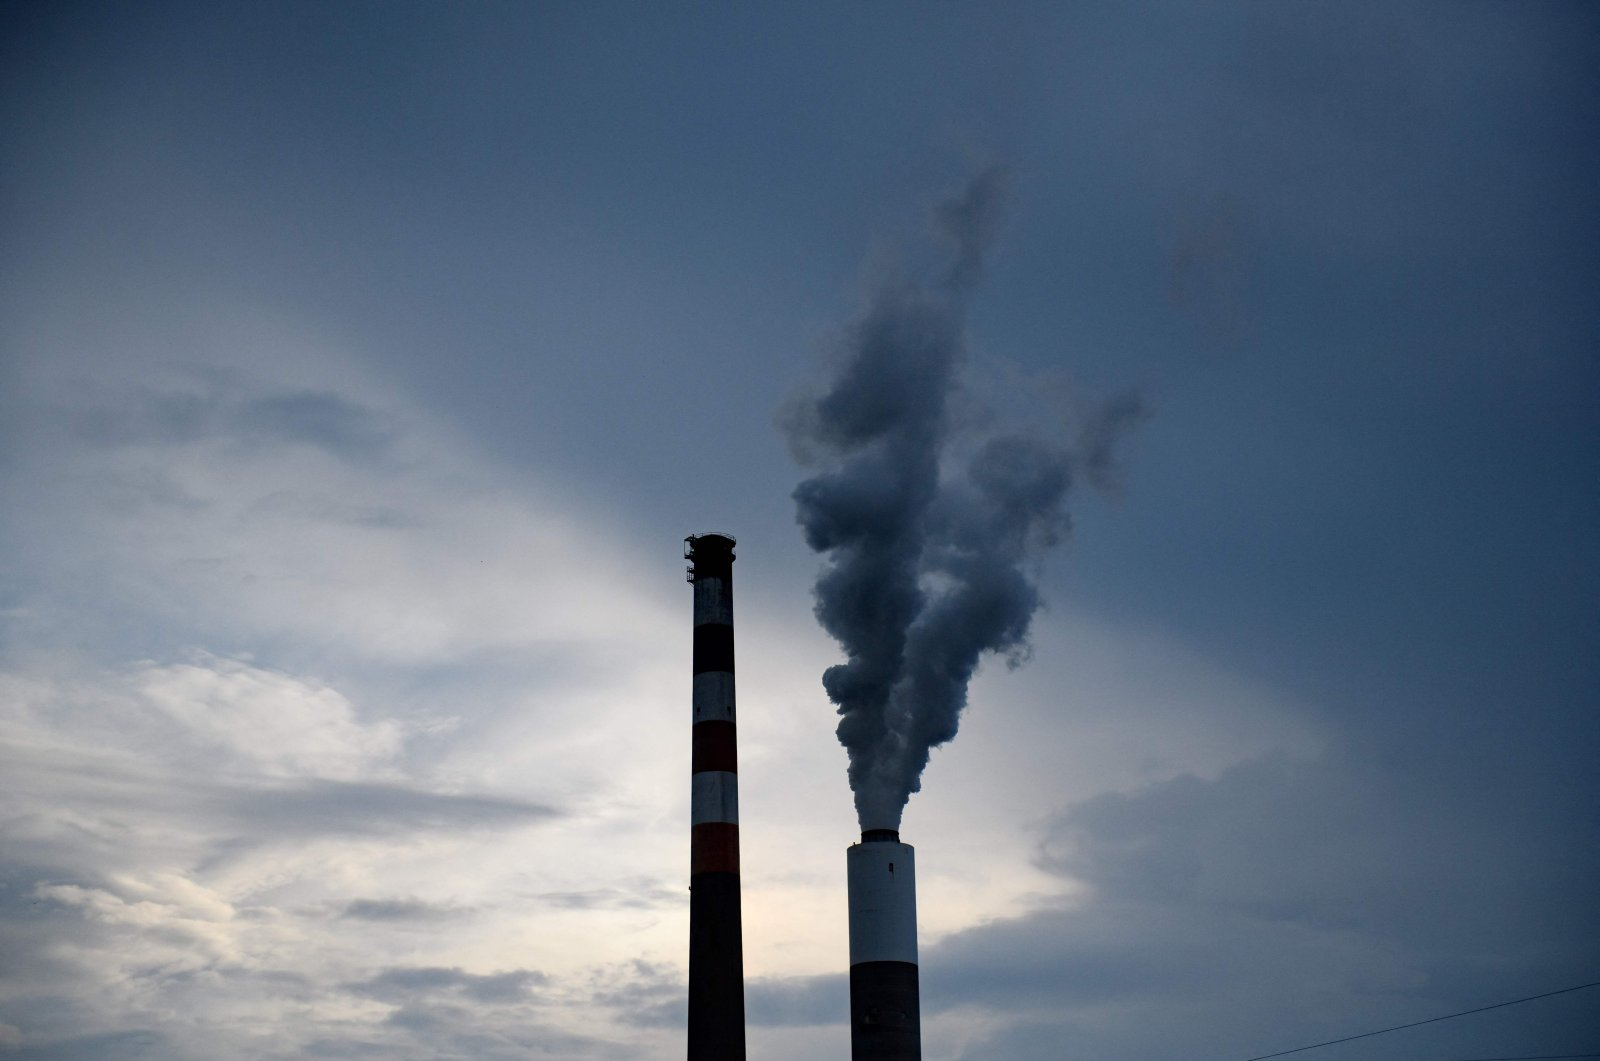 The GenOns Cheswick Power Station, which still burns coal to produce 637 megawatts of electricity for the region, about 15 miles northeast of Pittsburgh in Cheswick, Pennsylvania, U.S., June 7, 2021. (AFP File Photo)